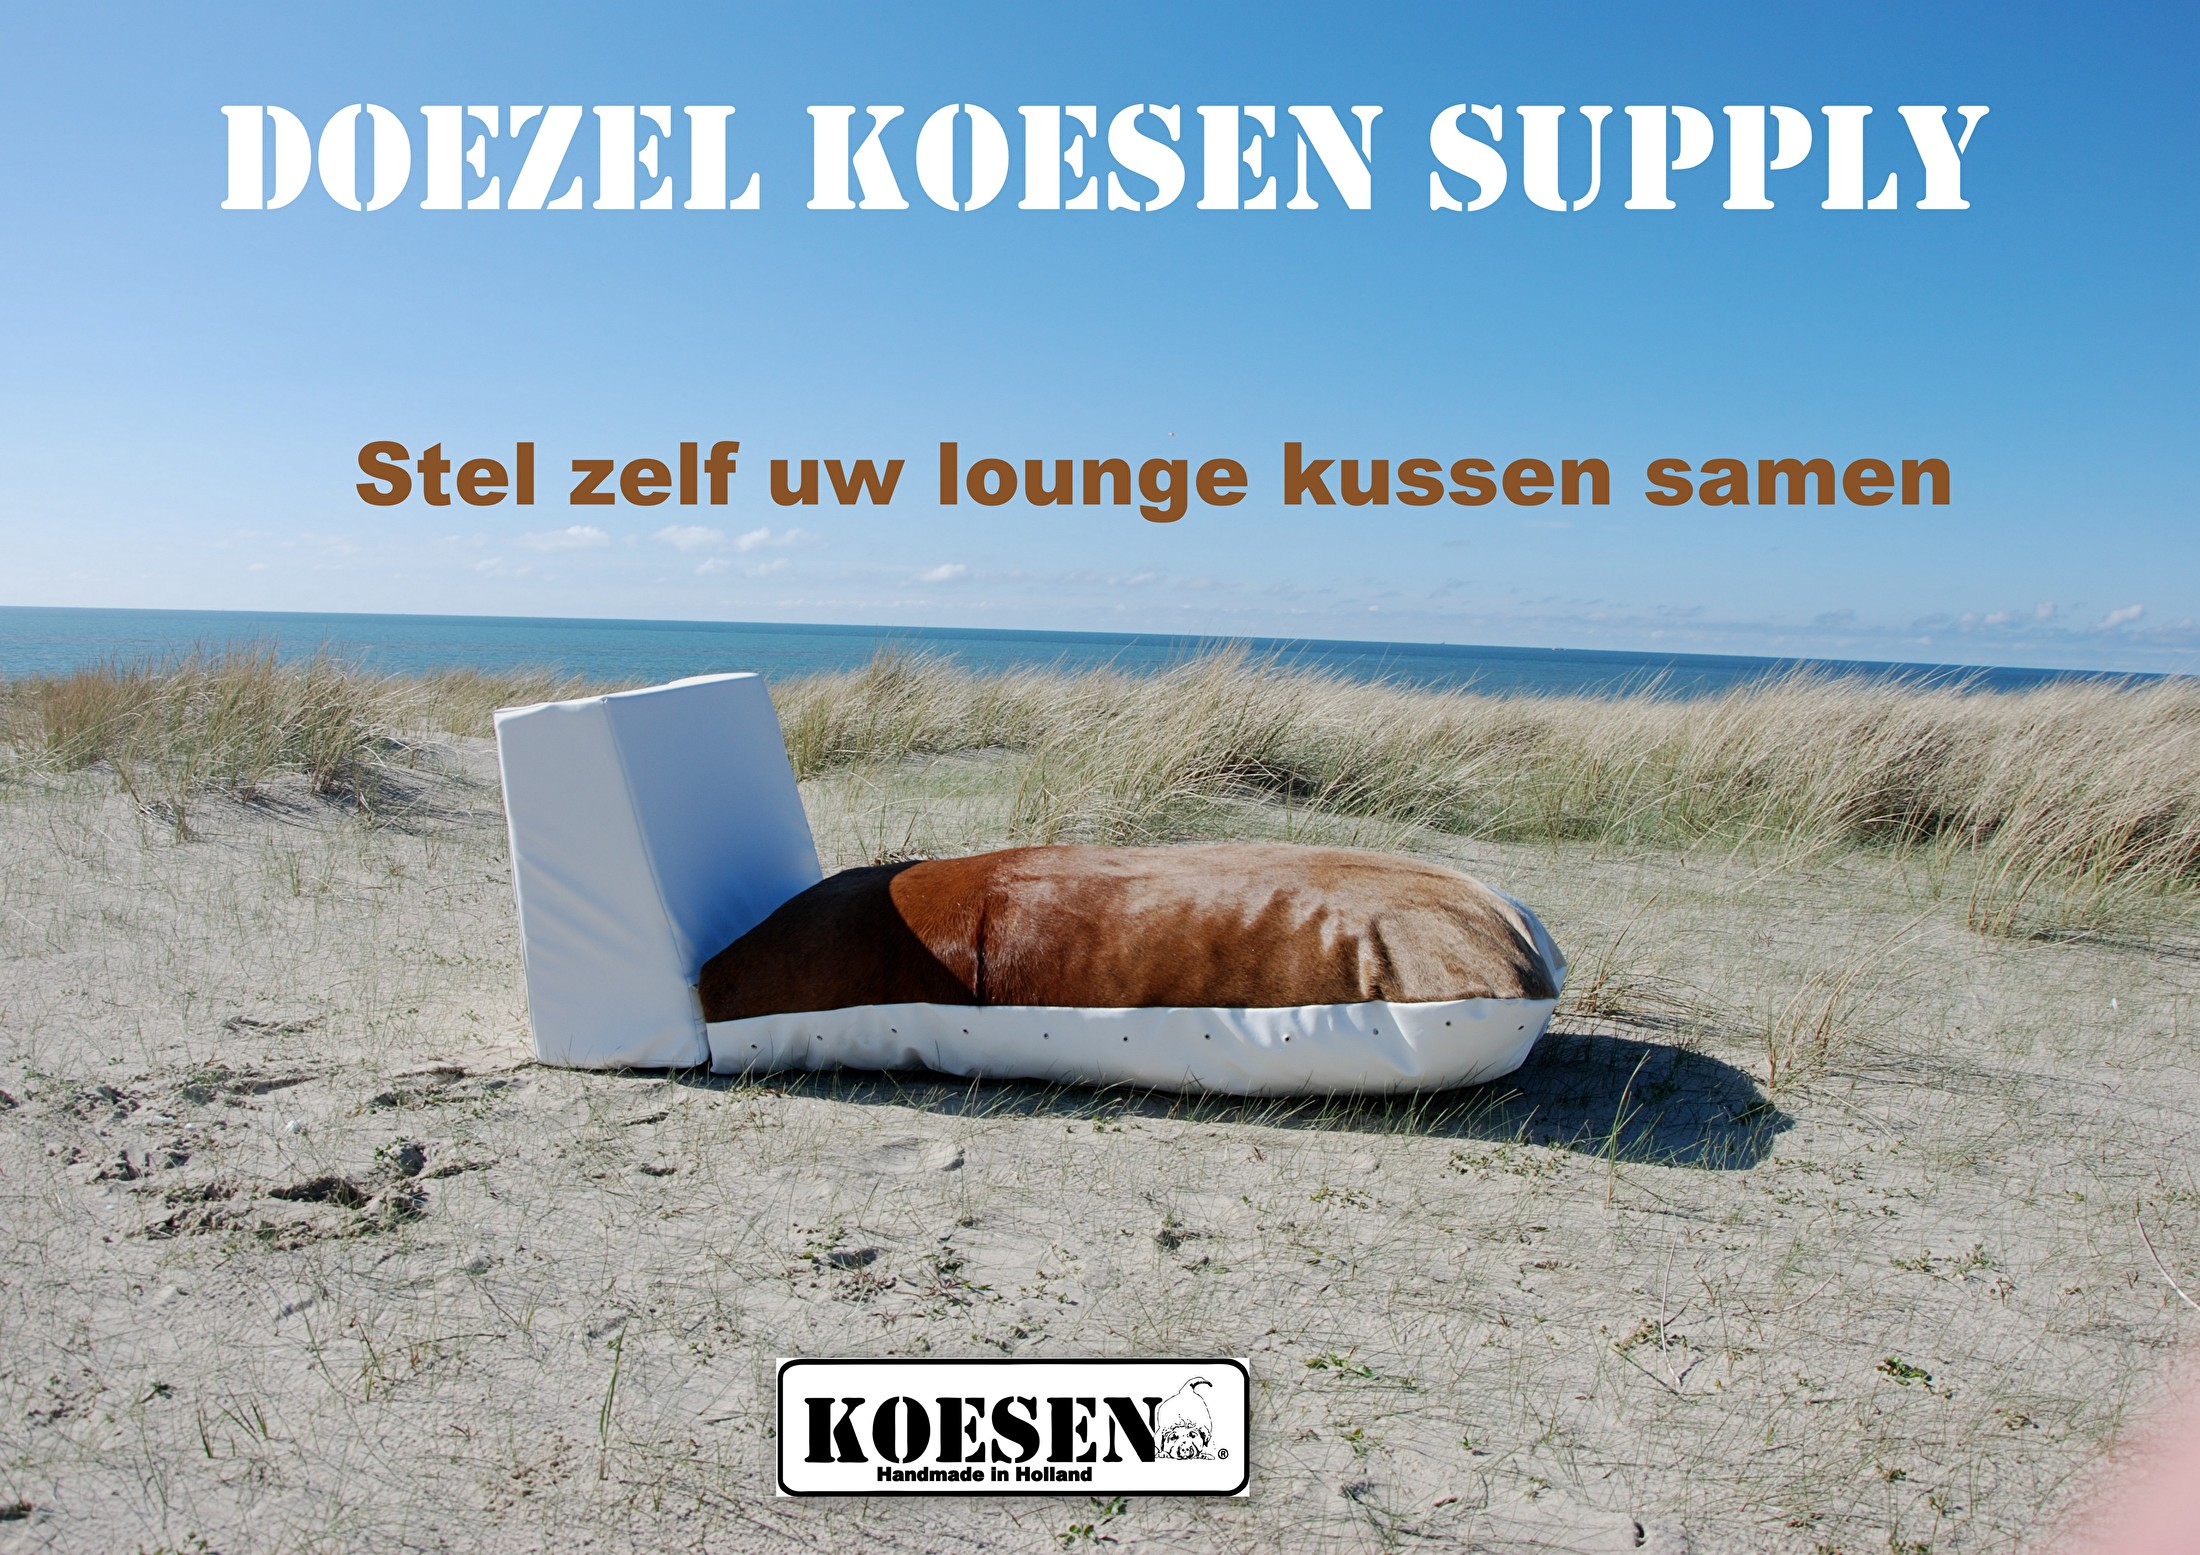 Doezel supply